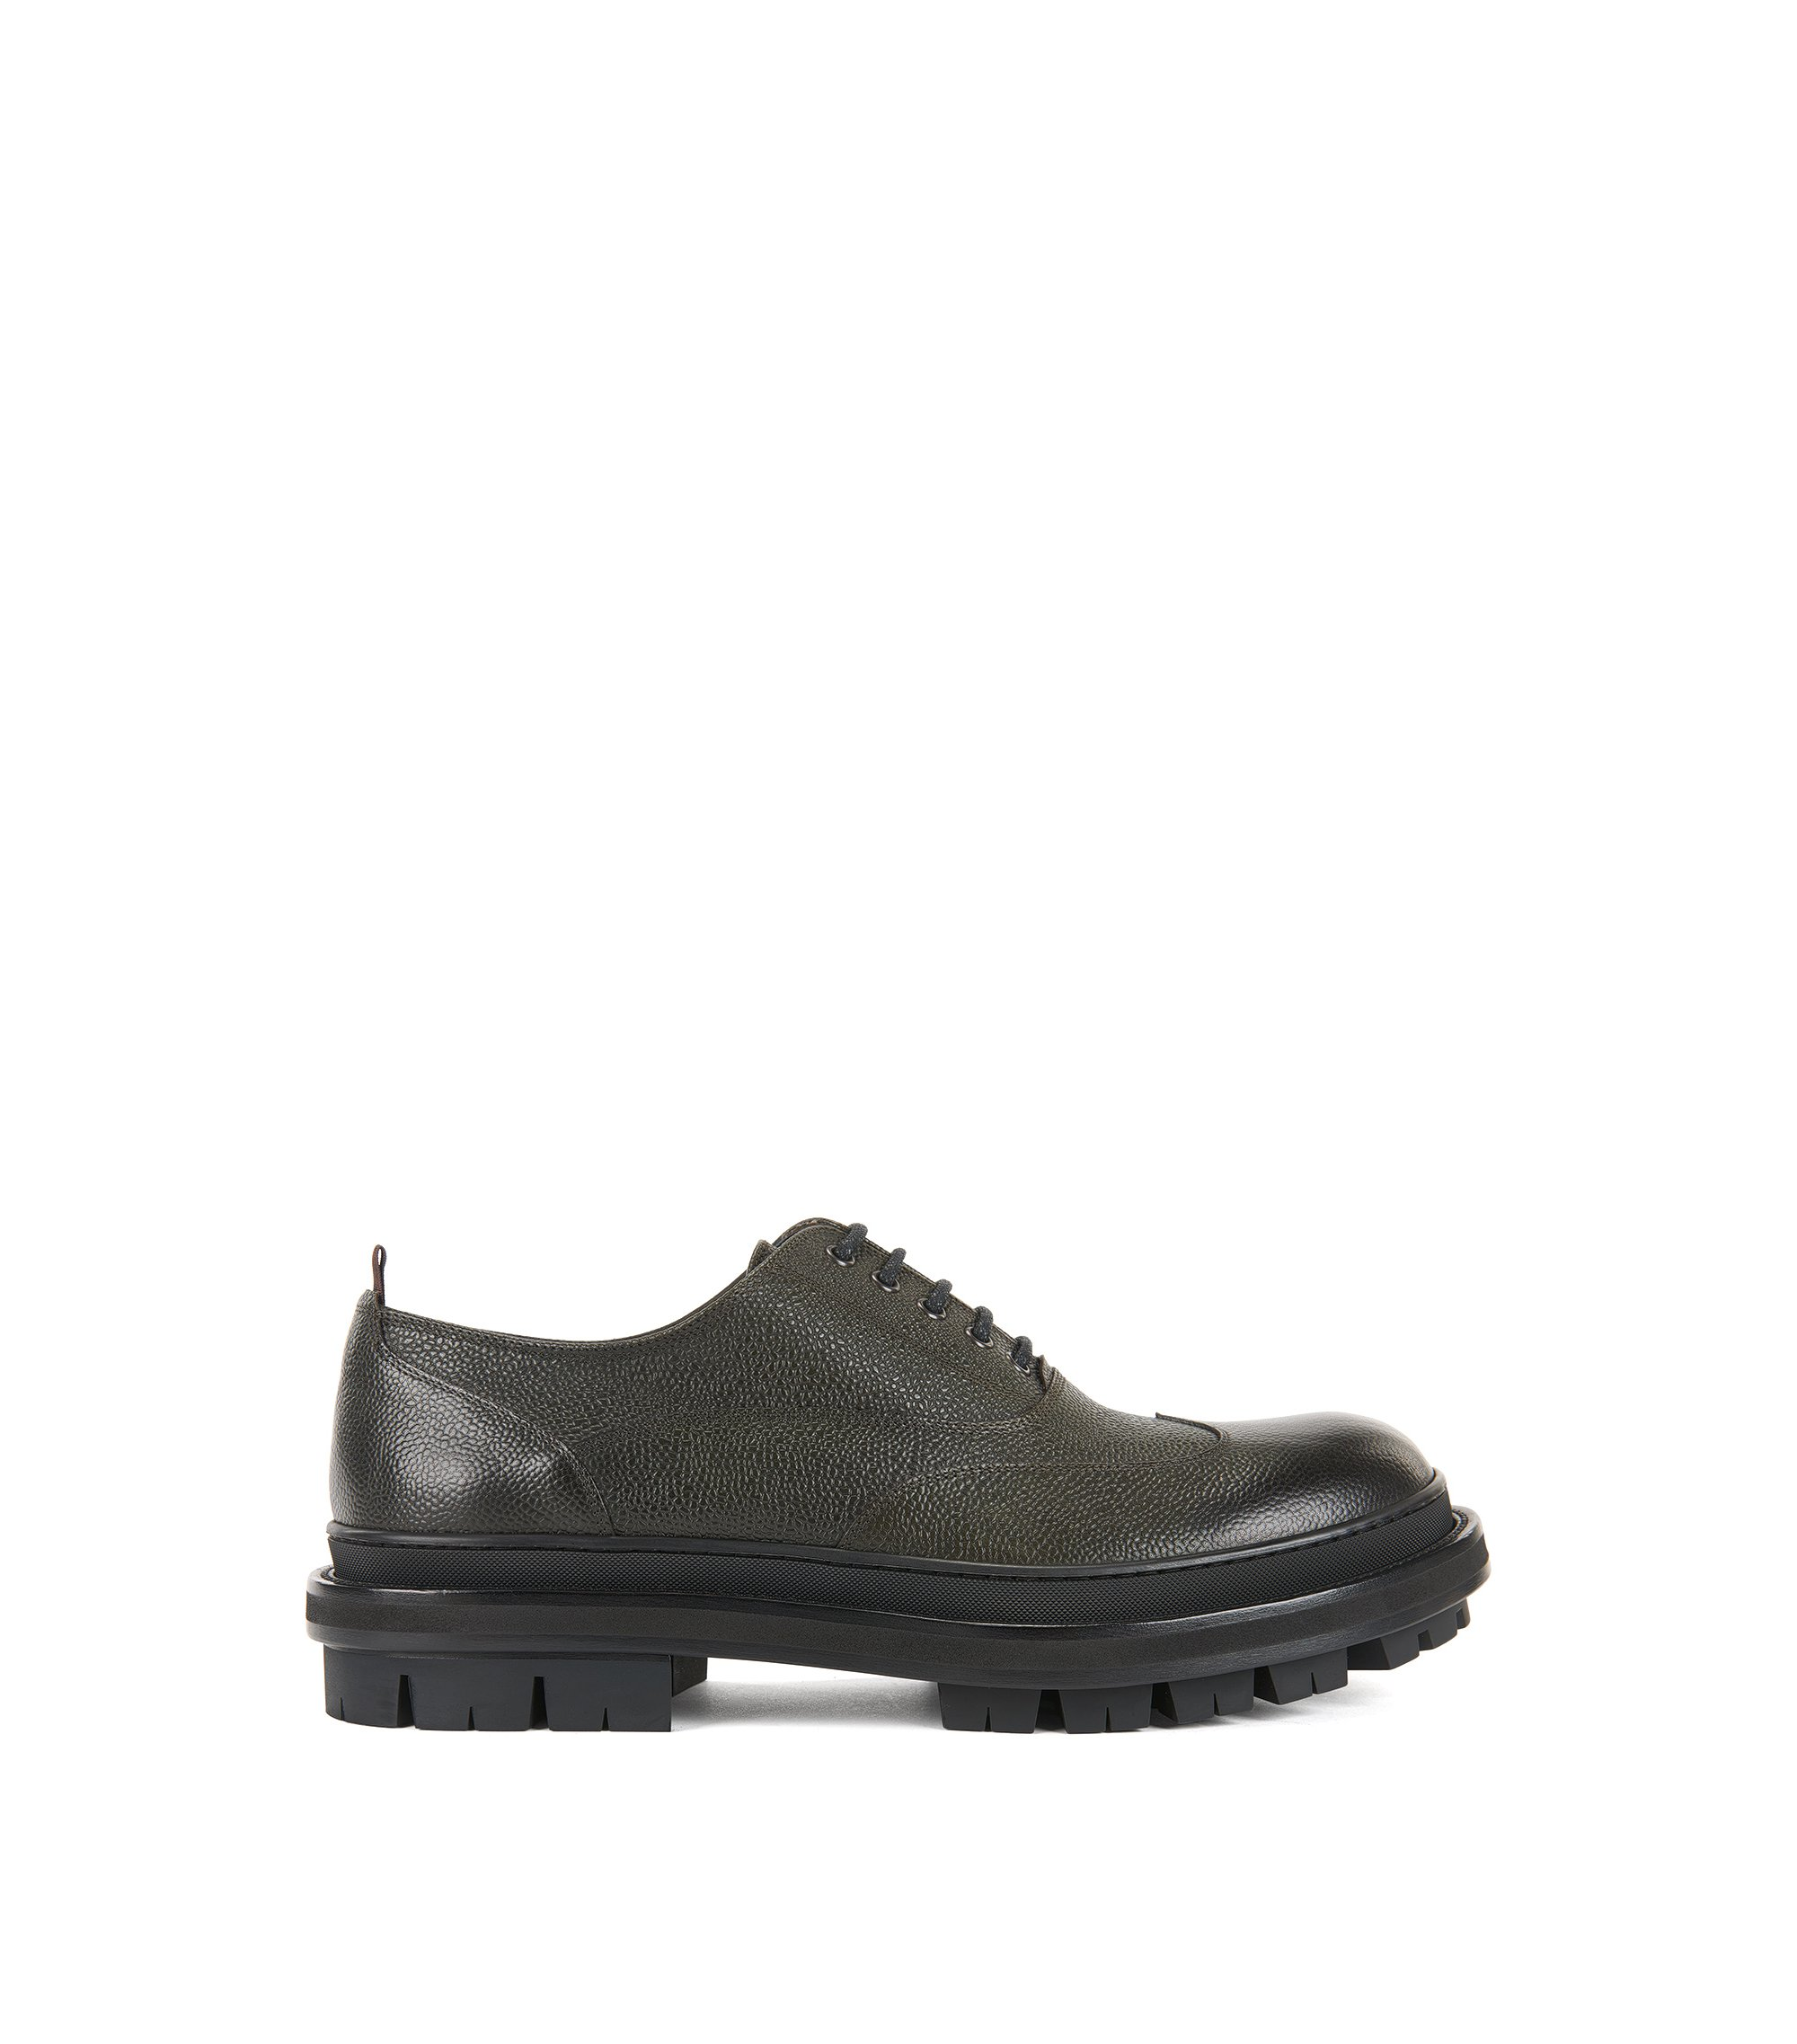 Scarpe Oxford in pelle martellata, Verde scuro